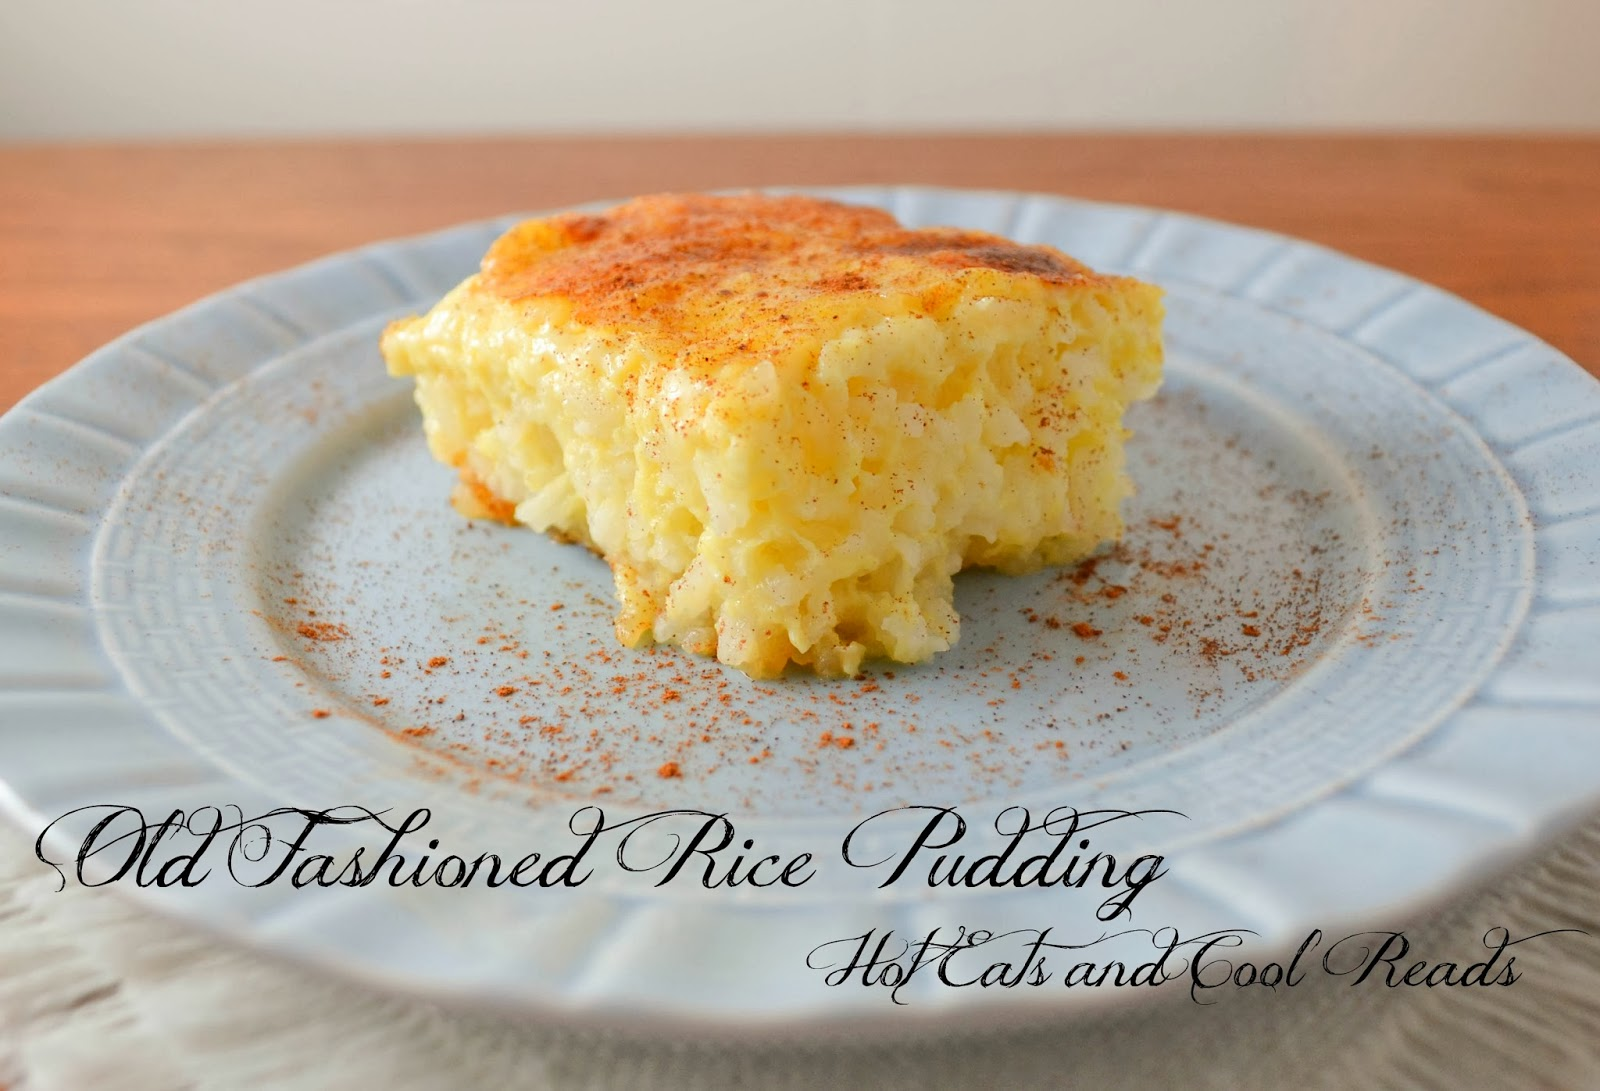 Hot Eats and Cool Reads: Old Fashioned Rice Pudding Recipe